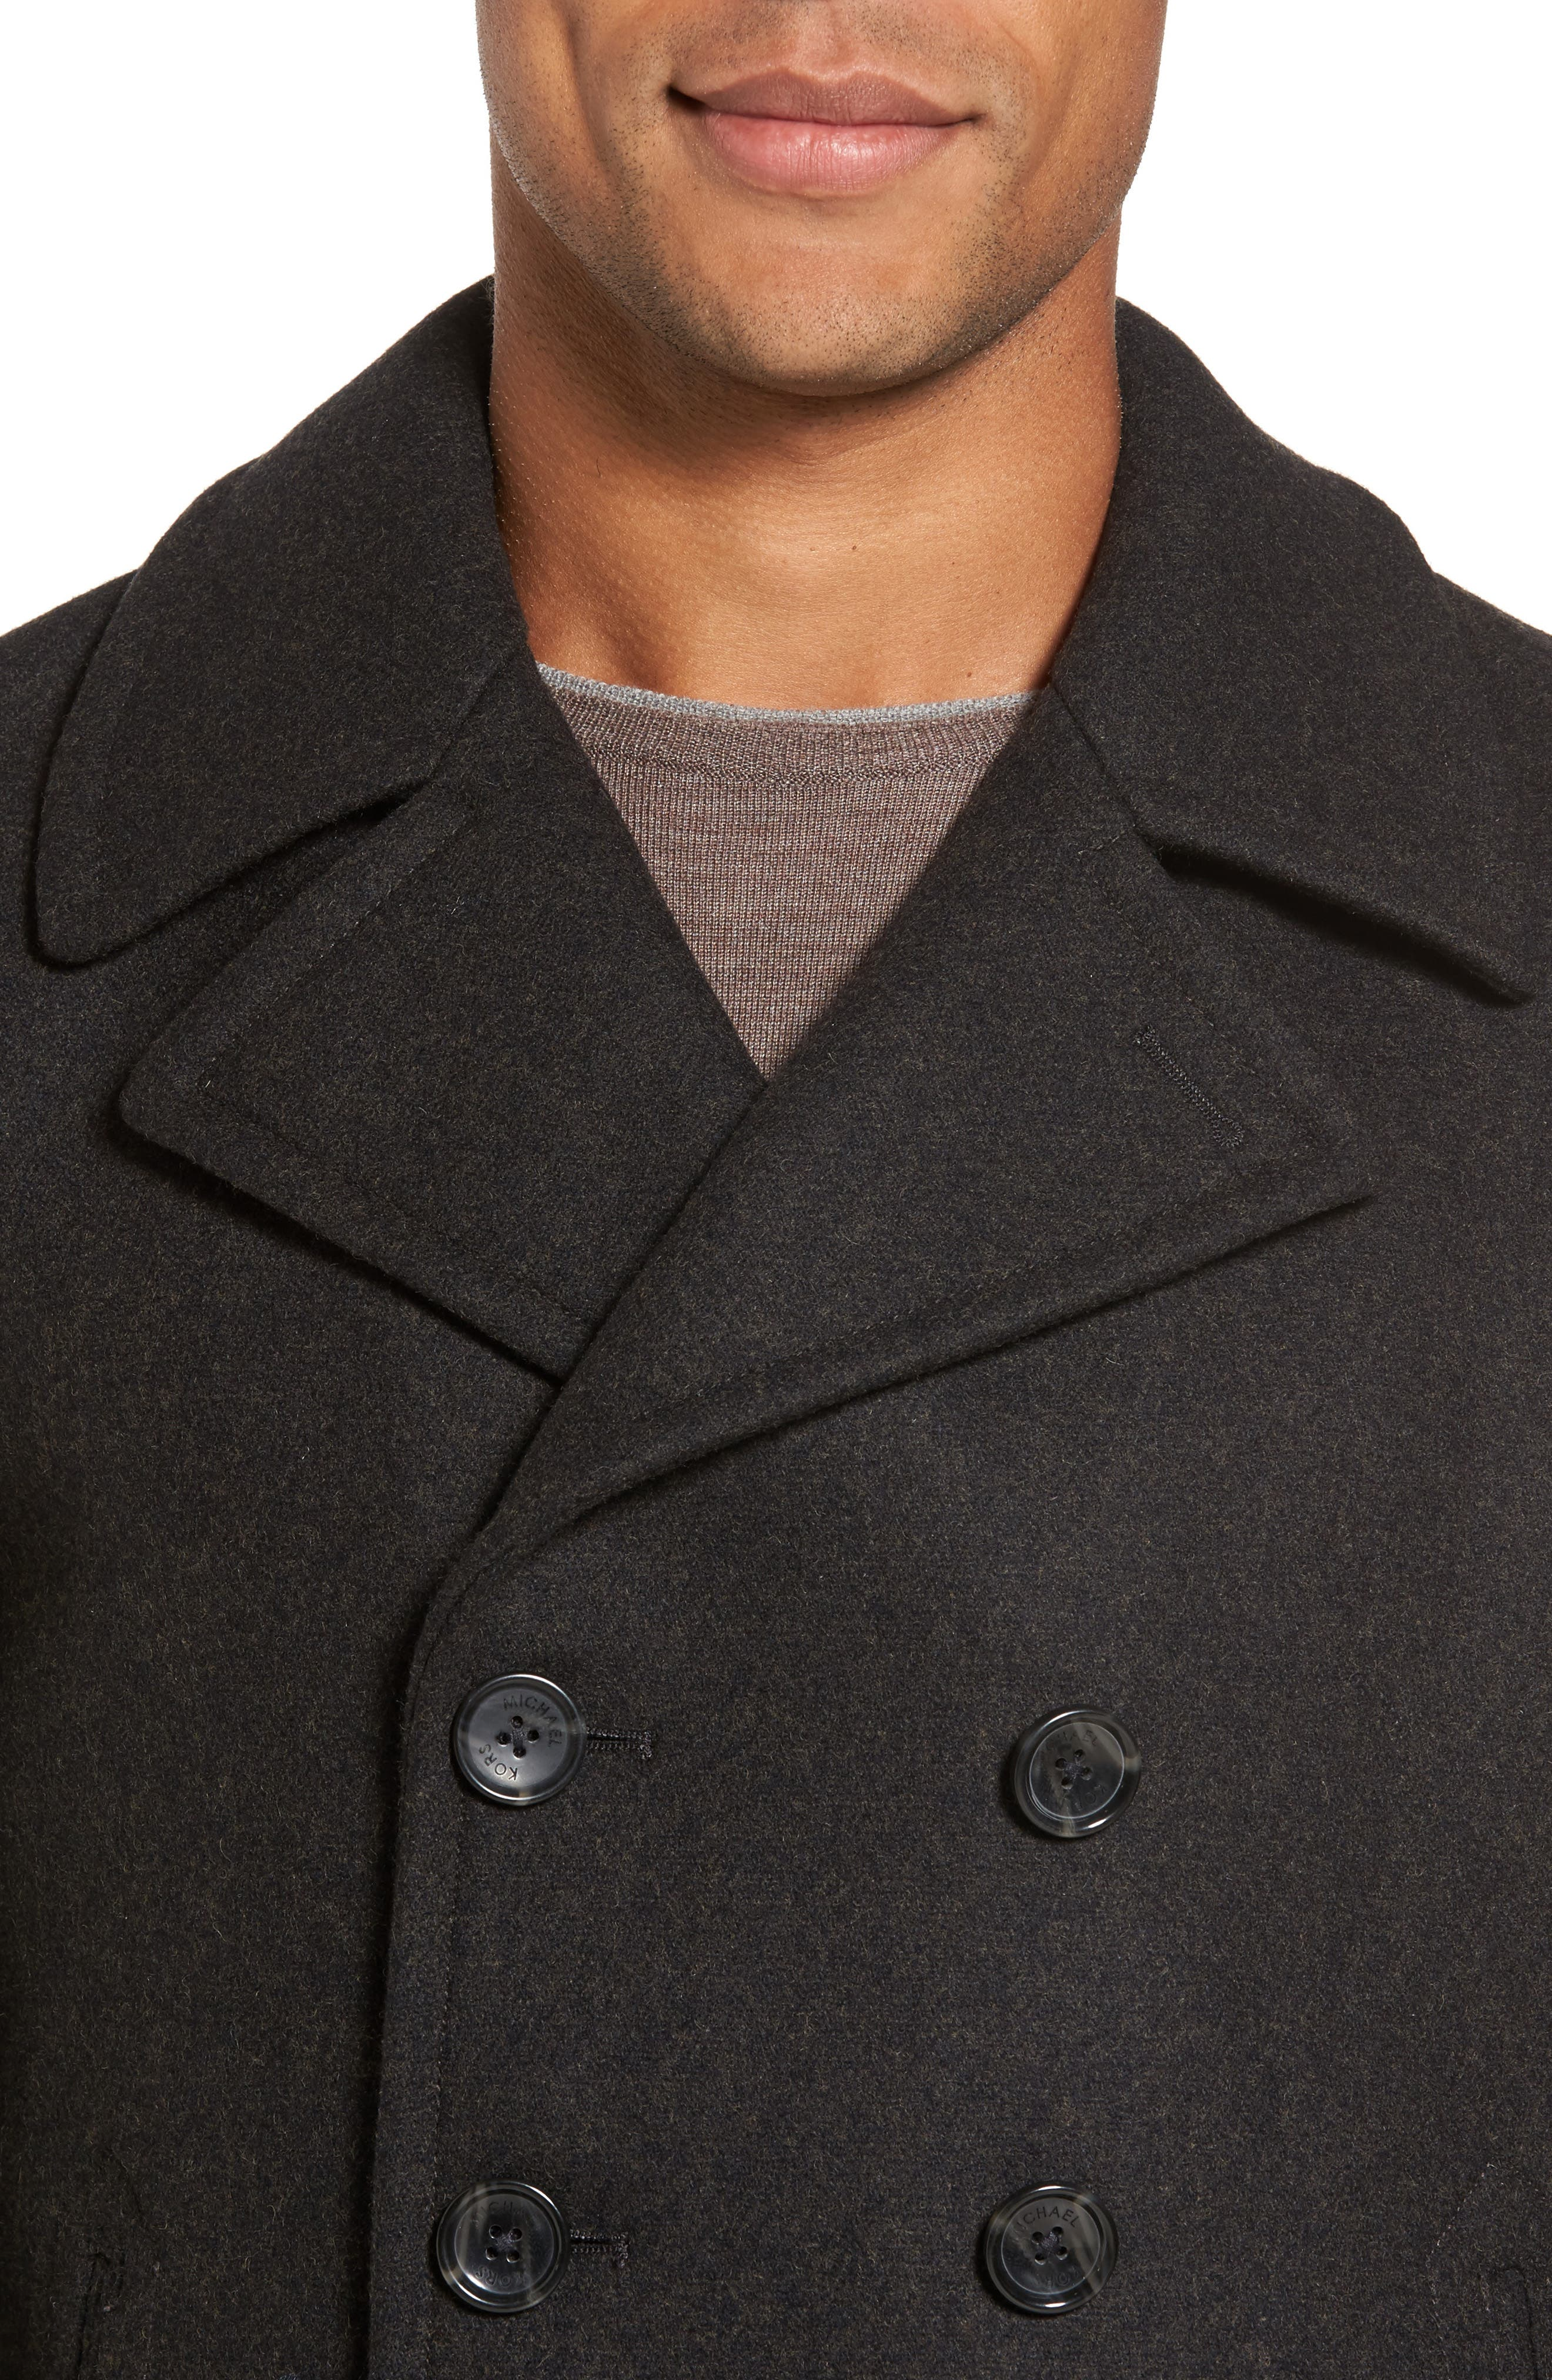 Wool Blend Double Breasted Peacoat,                             Alternate thumbnail 49, color,